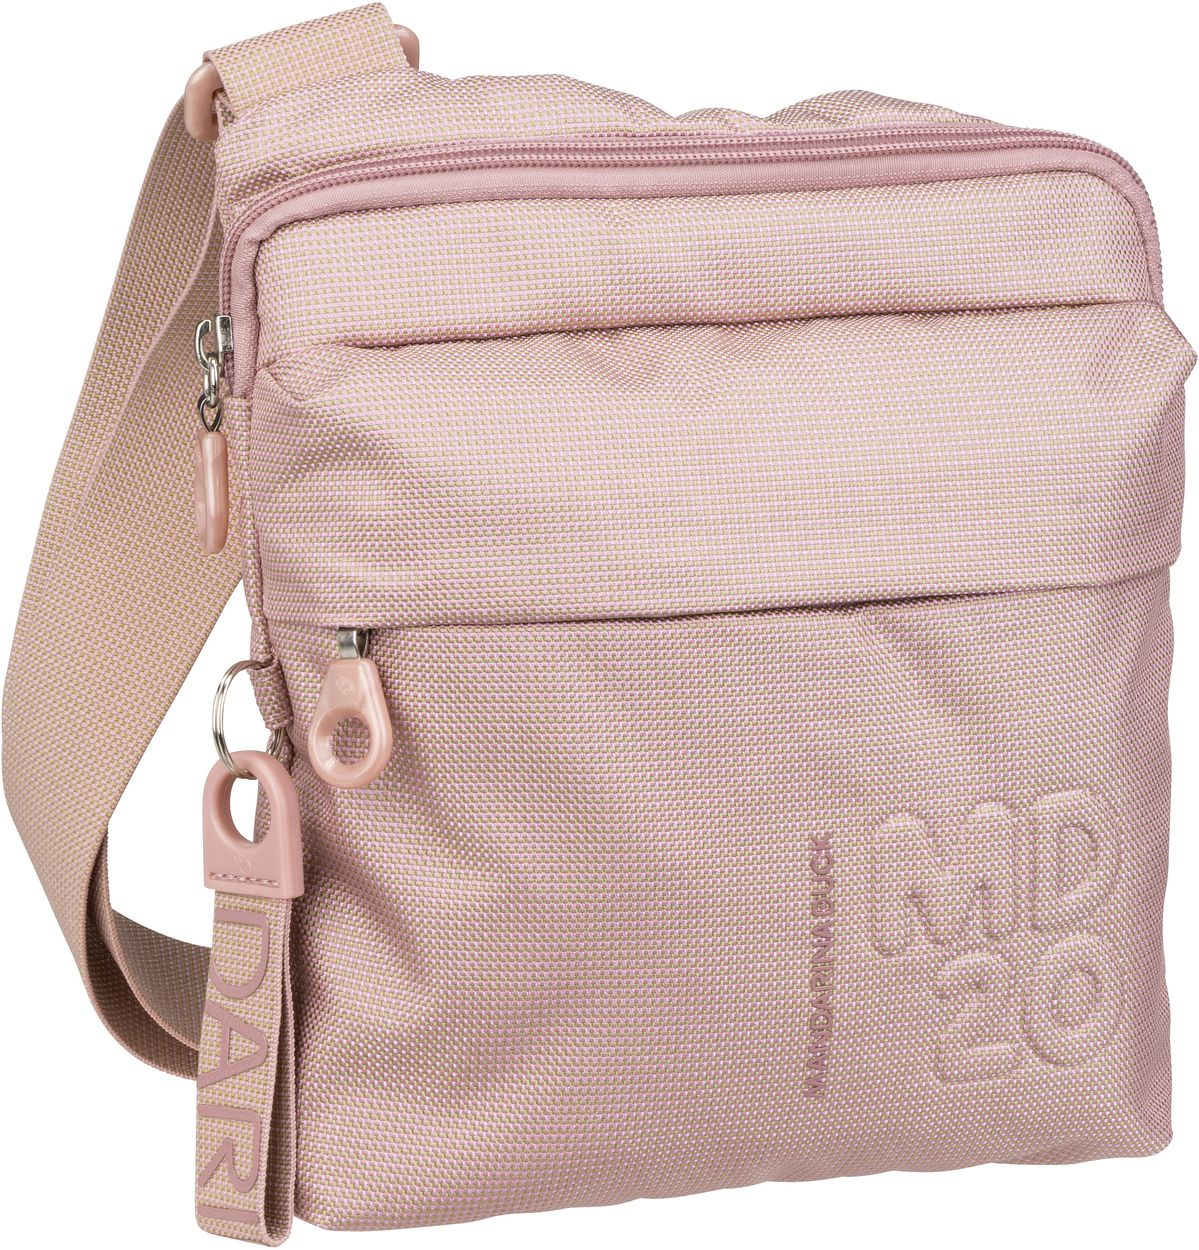 Umhängetasche MD20 Small Crossover Bag QMT04 Pale Blush